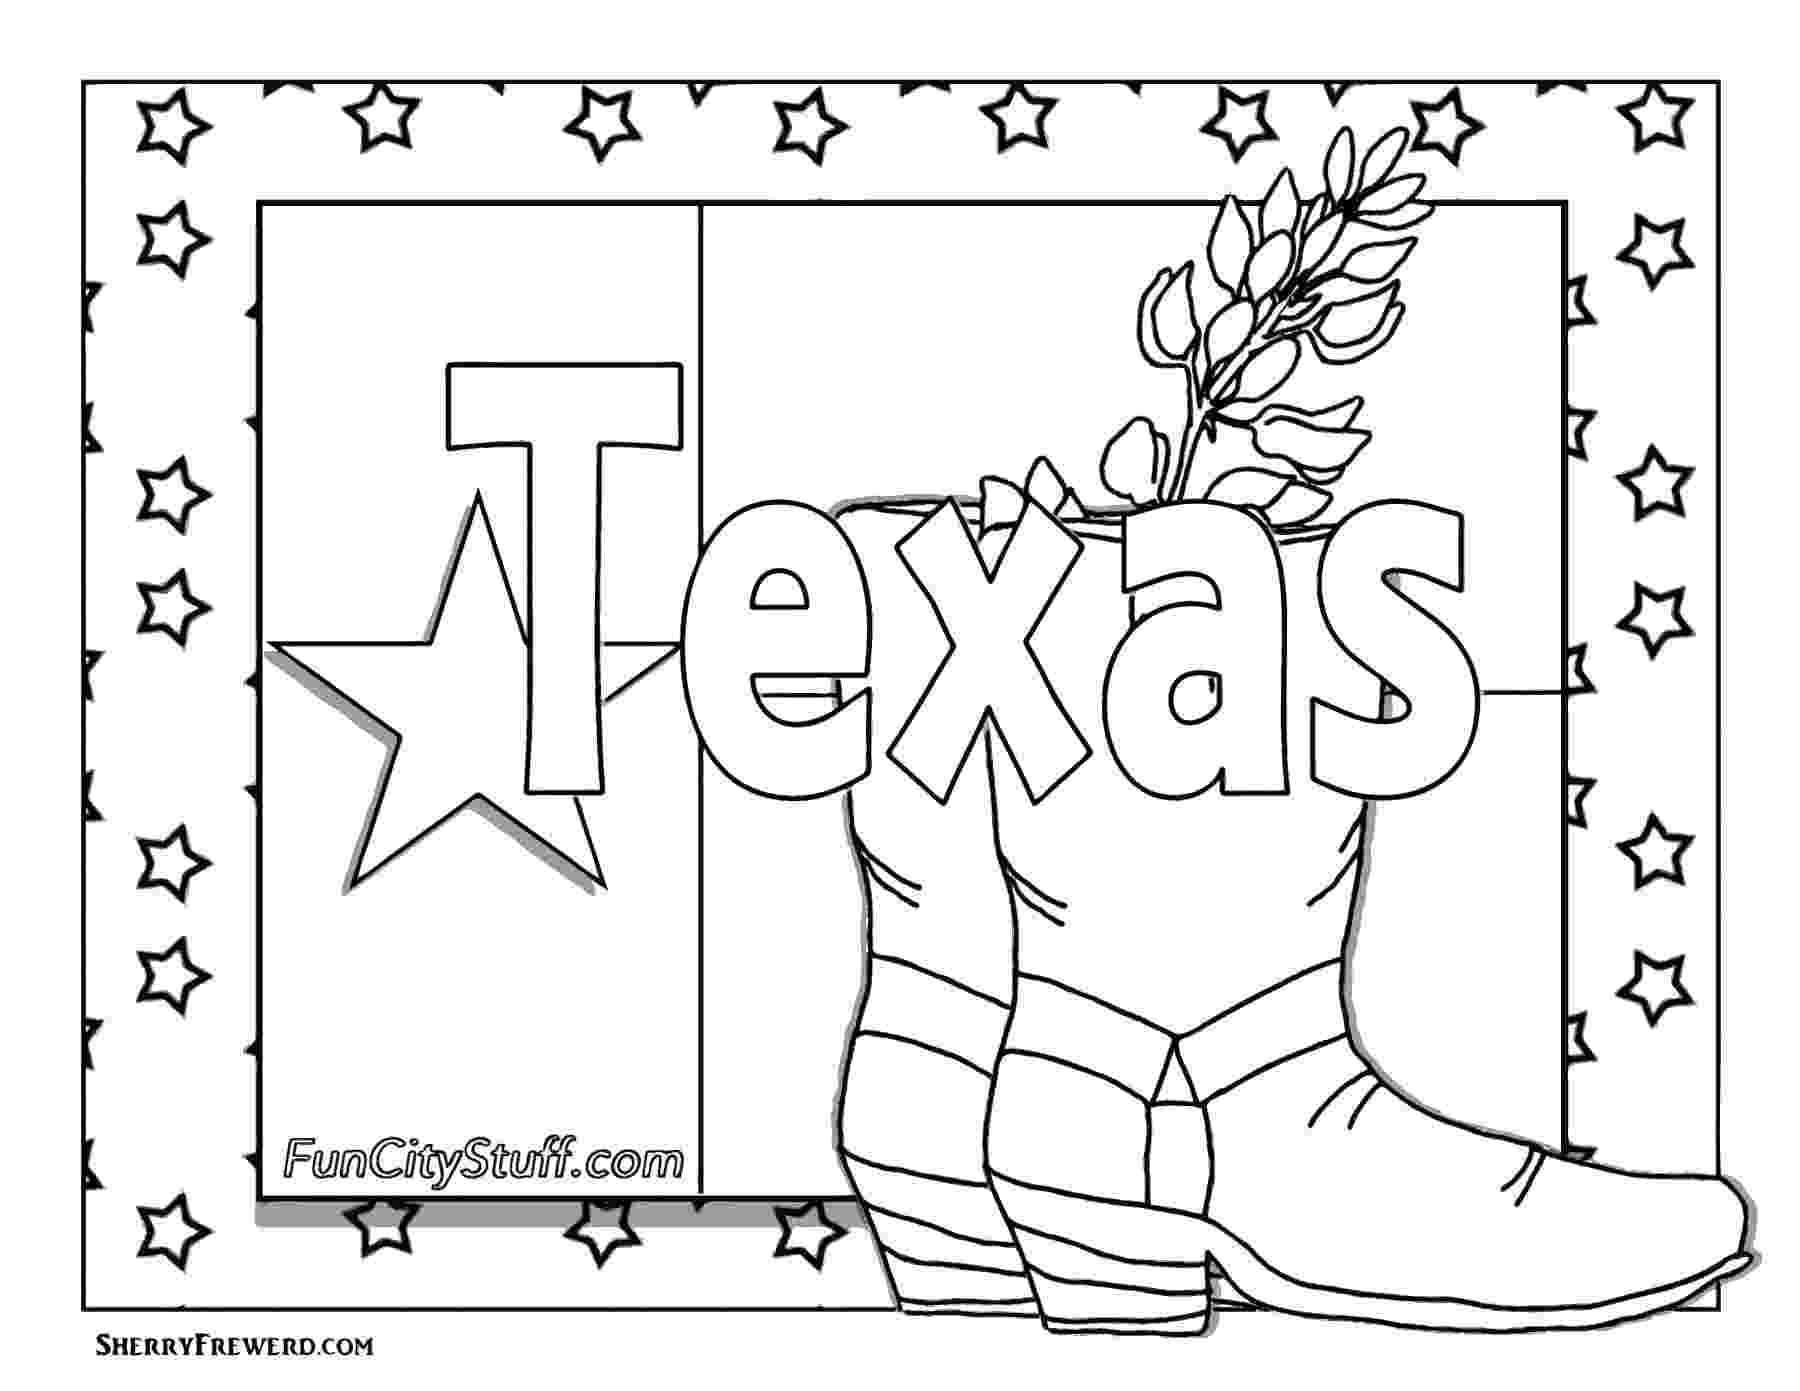 texas coloring book texas coloring page by doodle art alley usa coloring coloring texas book